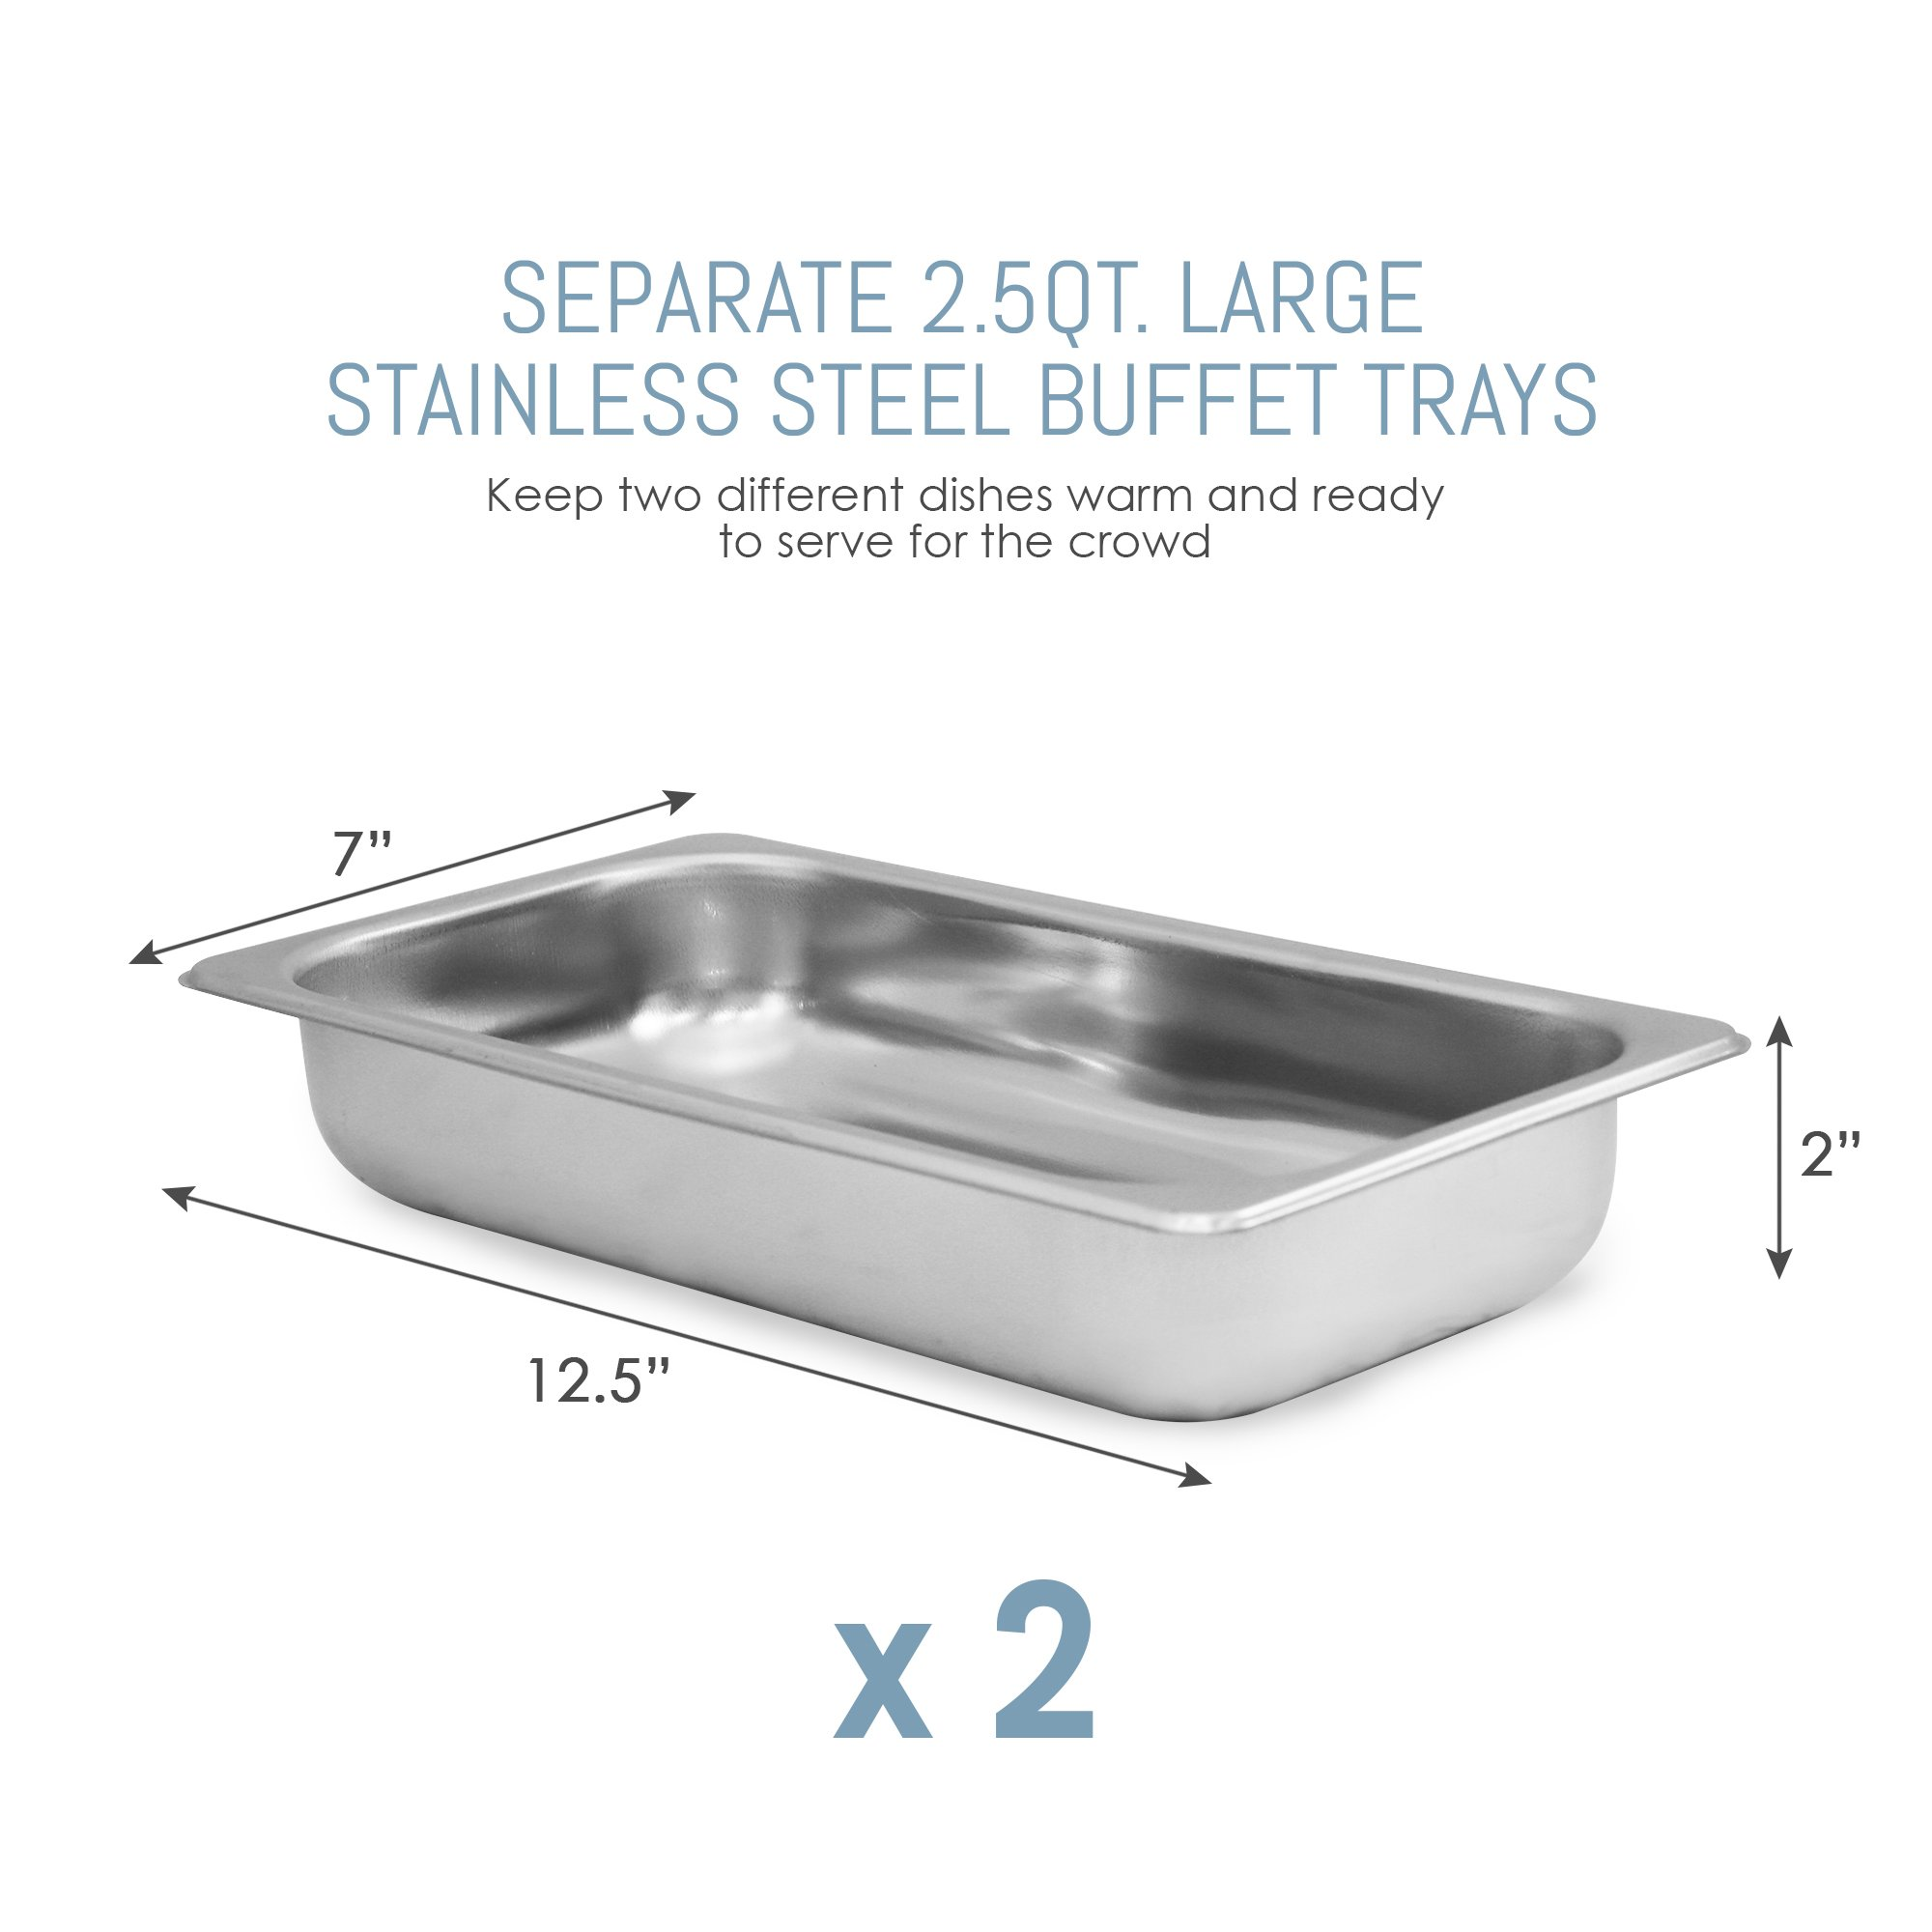 Elite Gourmet EWM-6122 Dual Server Food Warmer, Adjustable Temp For For Parties & Holidays, 2 x 2.5Qt Buffet Trays with Slotted Lids, Perfect for Parties, Entertaining & Holidays, Stainless Steel by Elite Gourmet (Image #4)